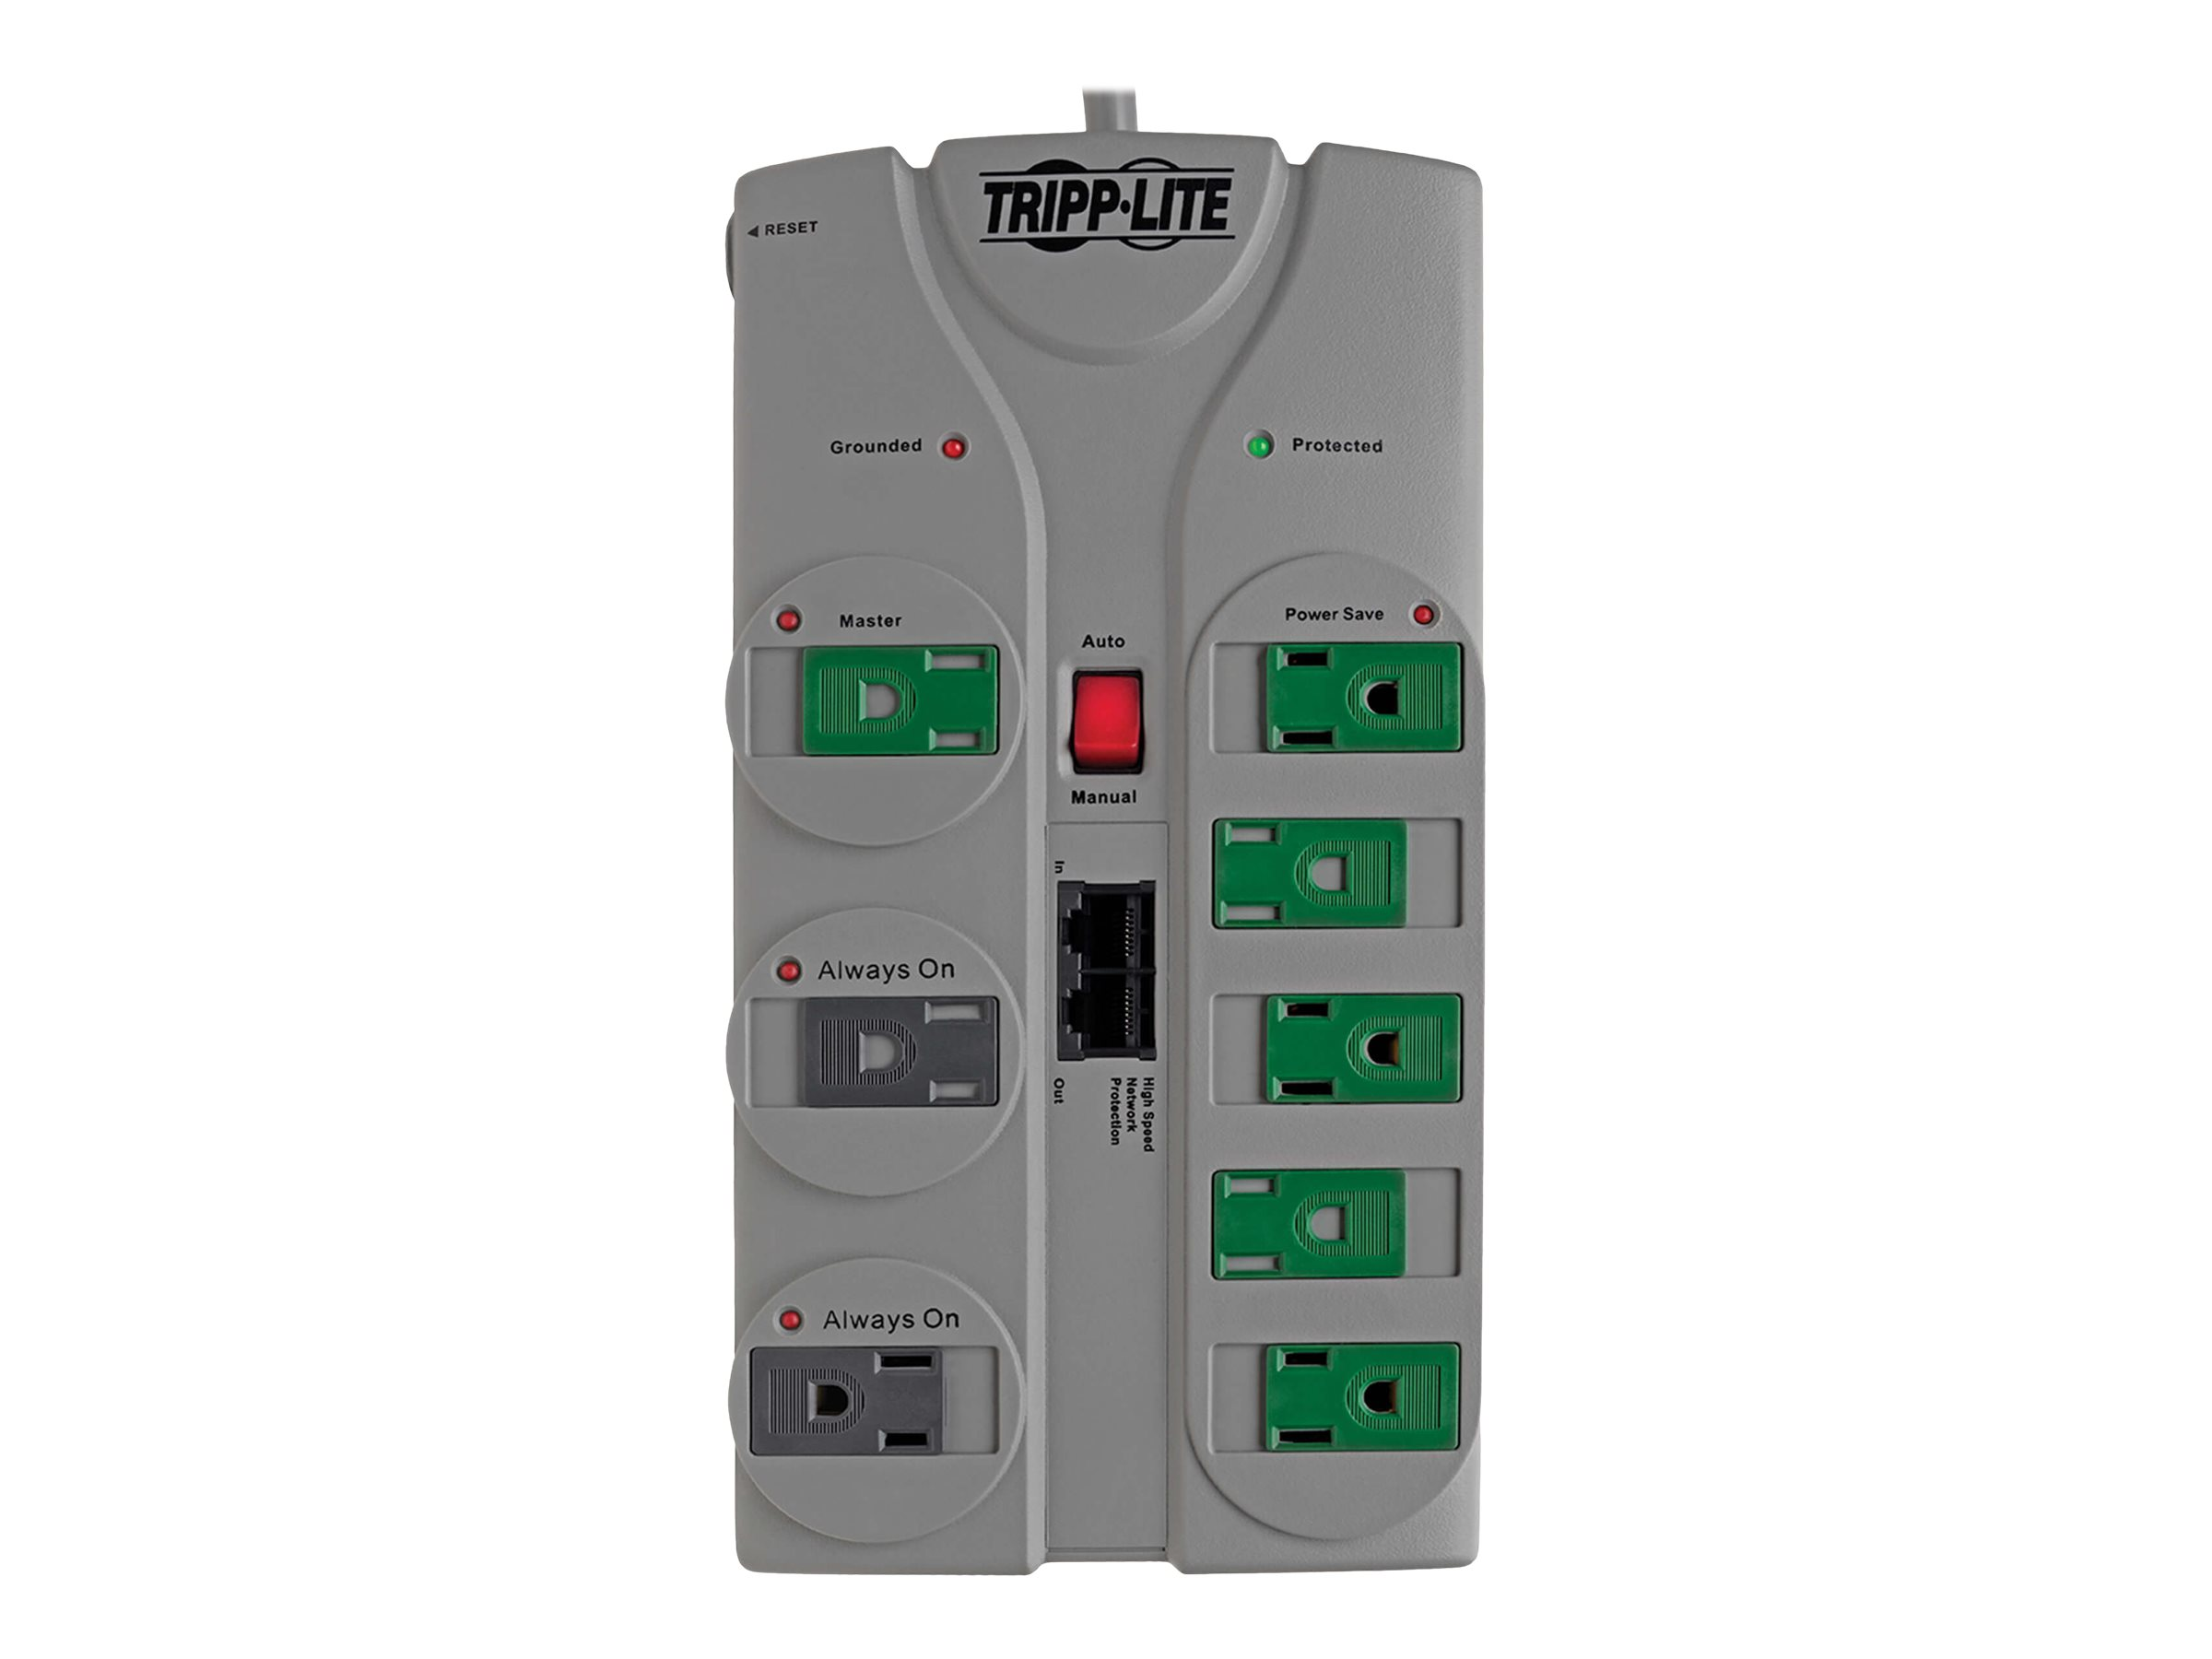 Tripp Lite Eco Surge Protector Green 120V 8 Outlet RJ45 8' Cord 2160 Joule - surge protector